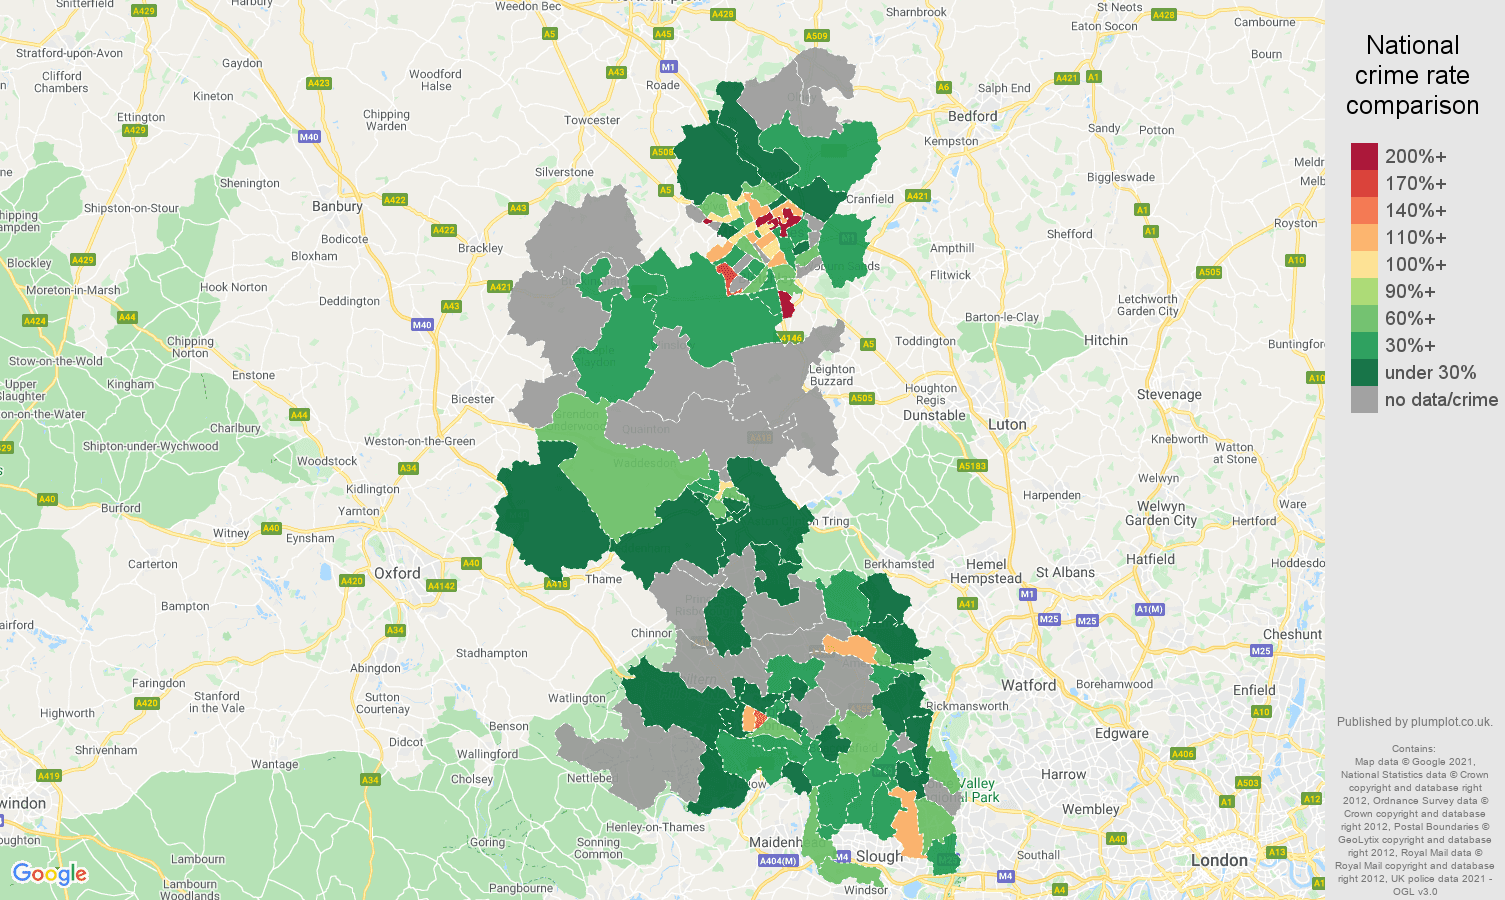 Buckinghamshire robbery crime rate comparison map